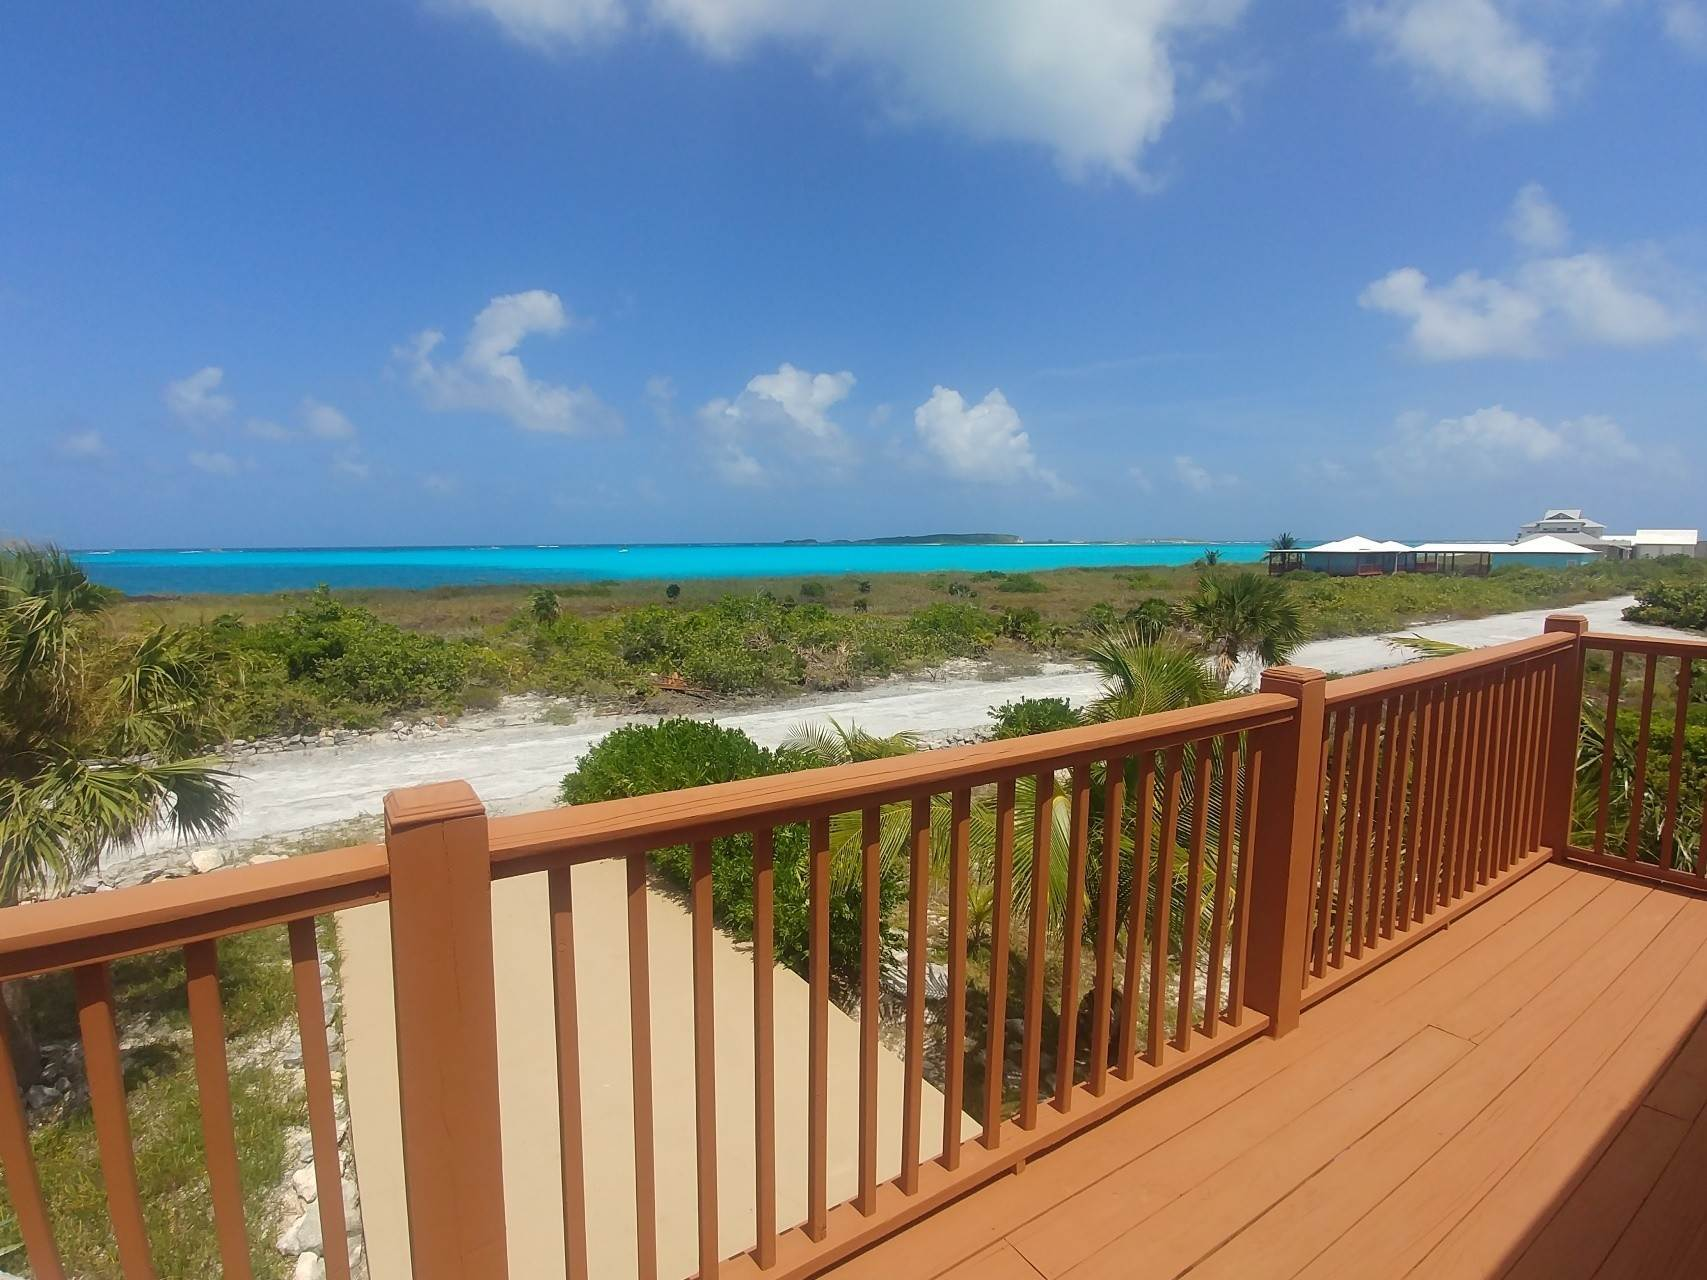 Single Family Homes for Sale at Ocean View Home in Columbus Landings with Additional Lot - MLS 38908 Columbus Landings, San Salvador, Bahamas